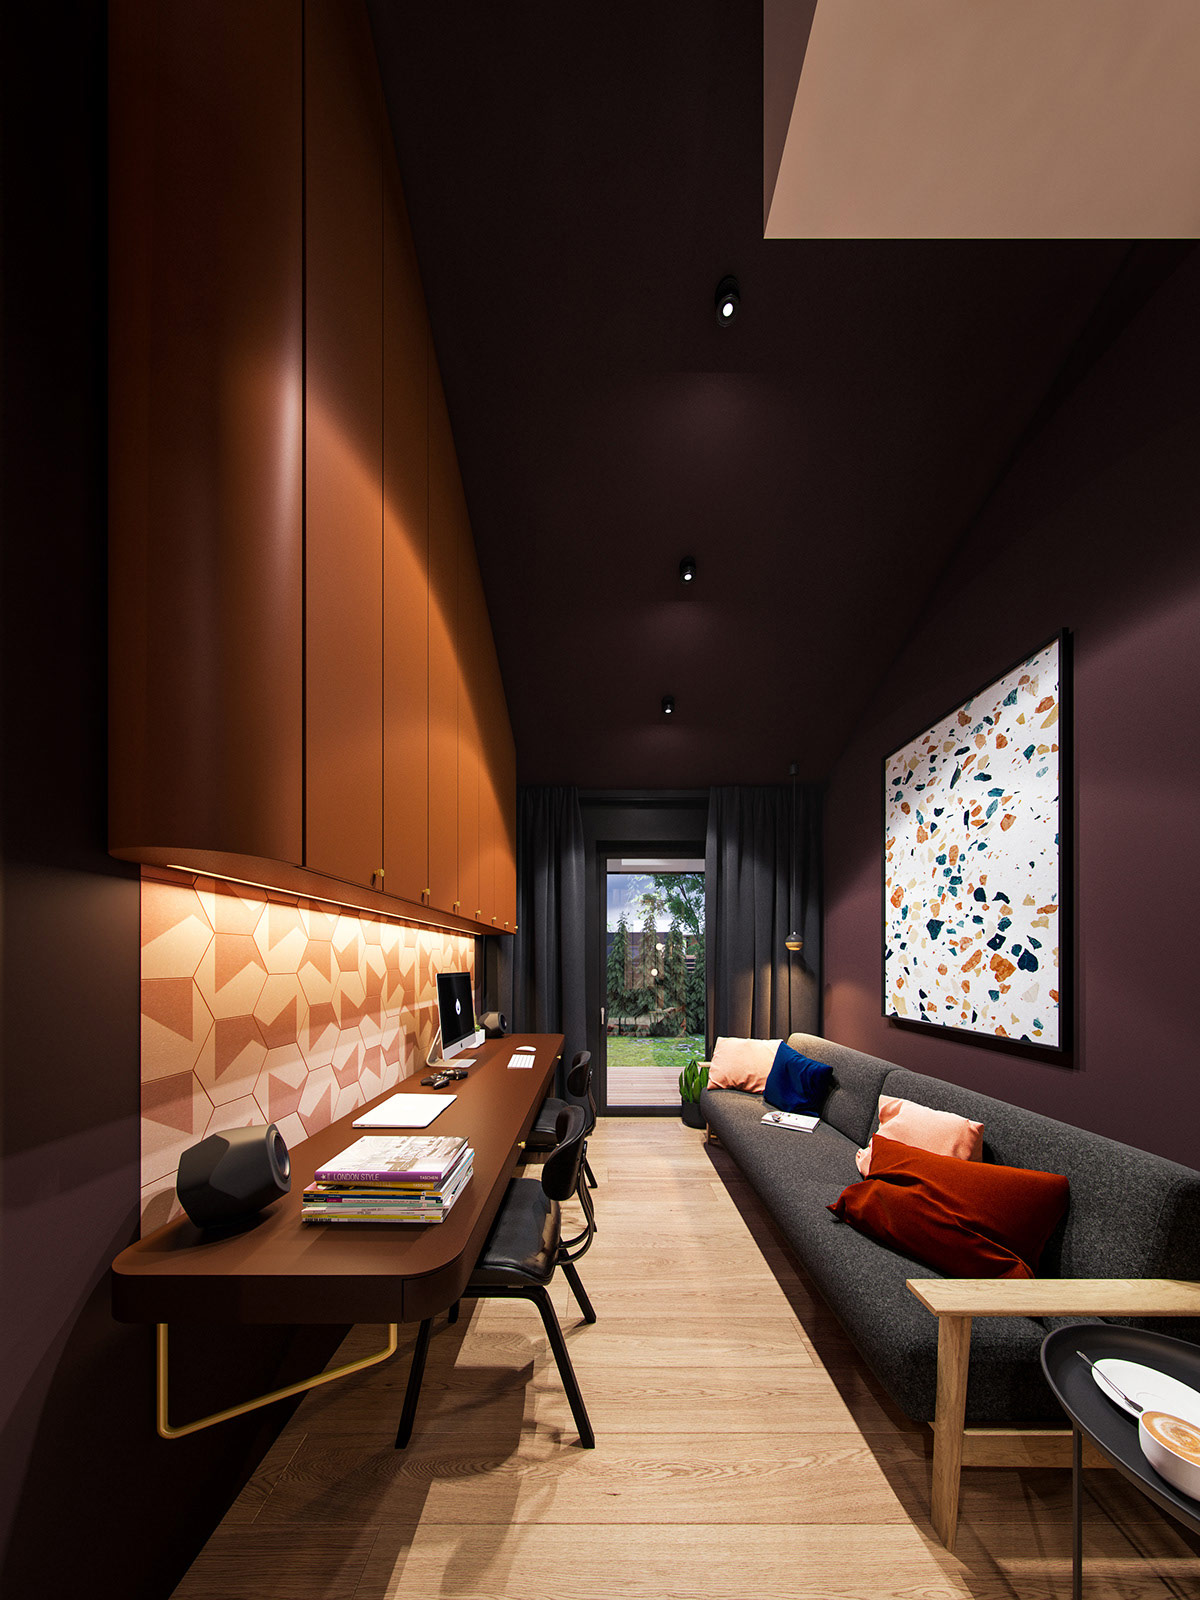 Interstellar An Out Of This World Stylish Home Interior